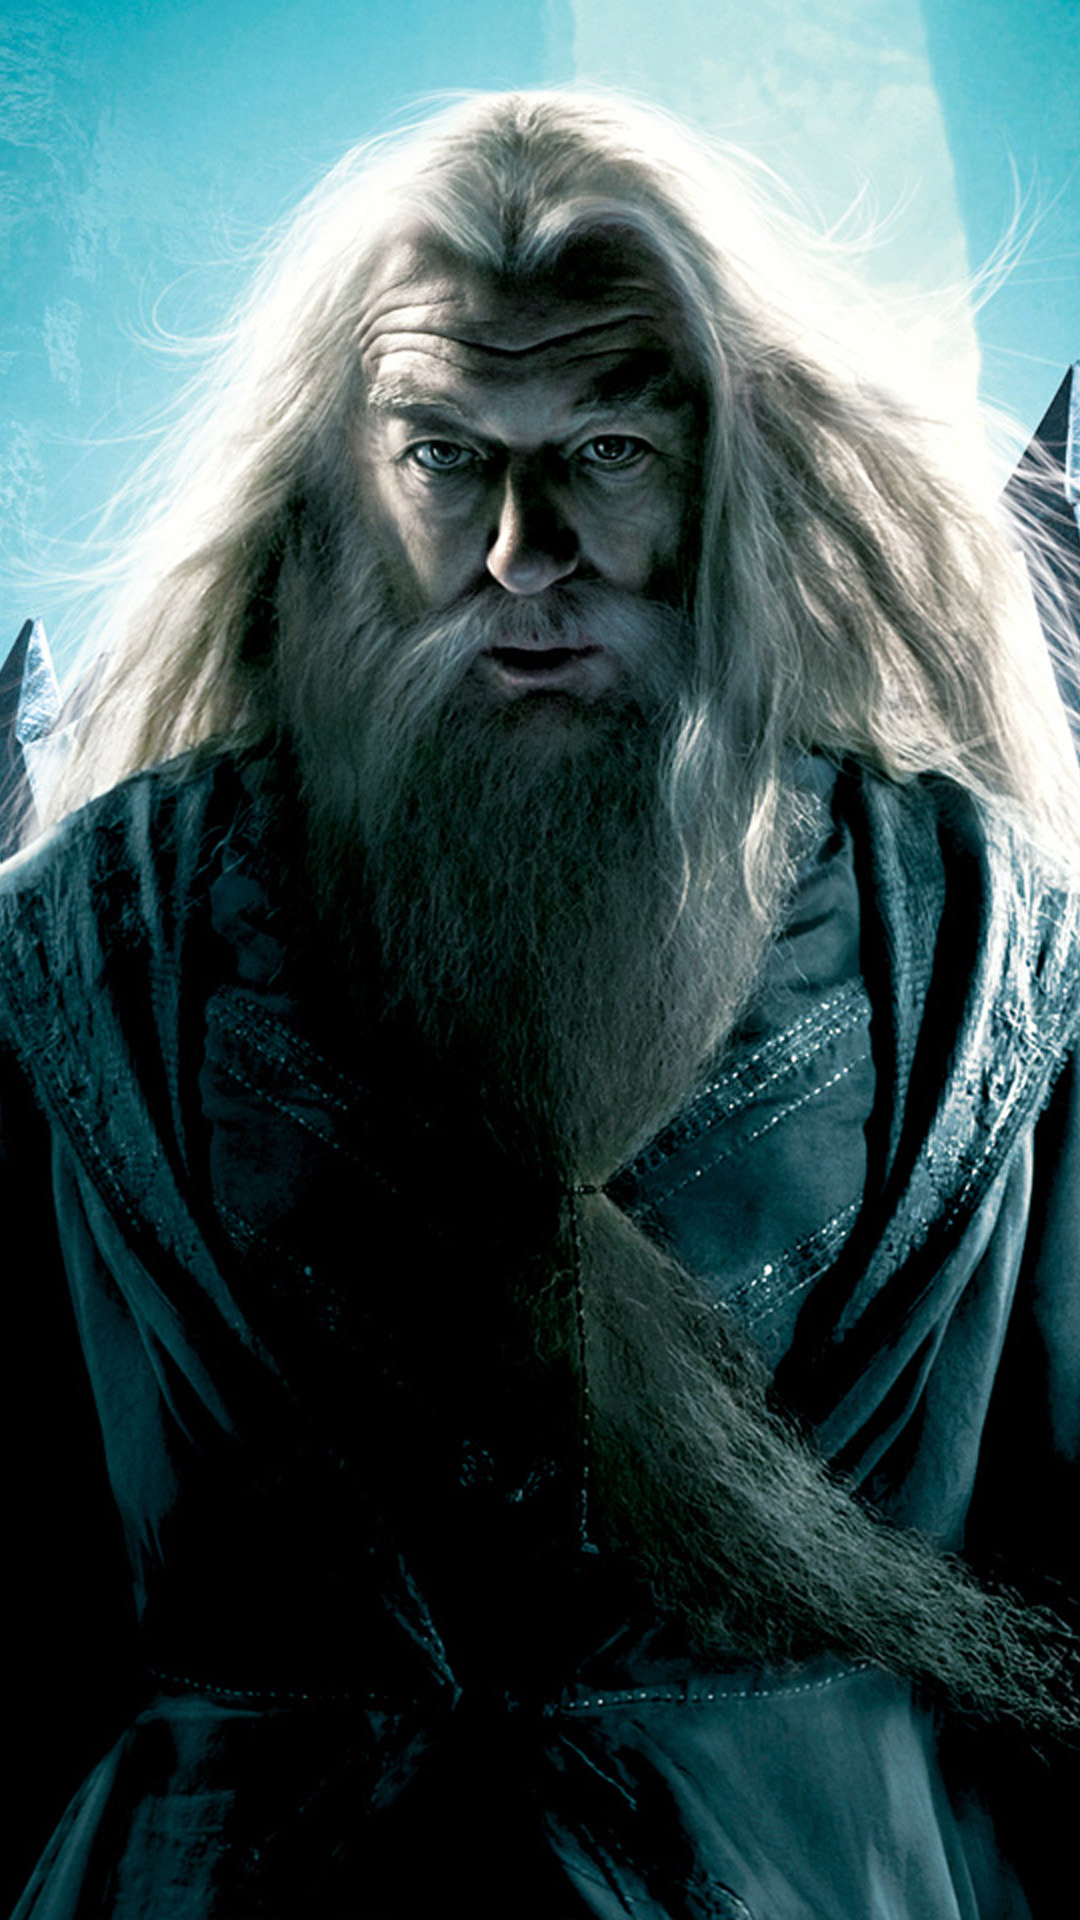 Harry Potter Wallpaper For Android   Harry Potter Dumbledore 1080x1920